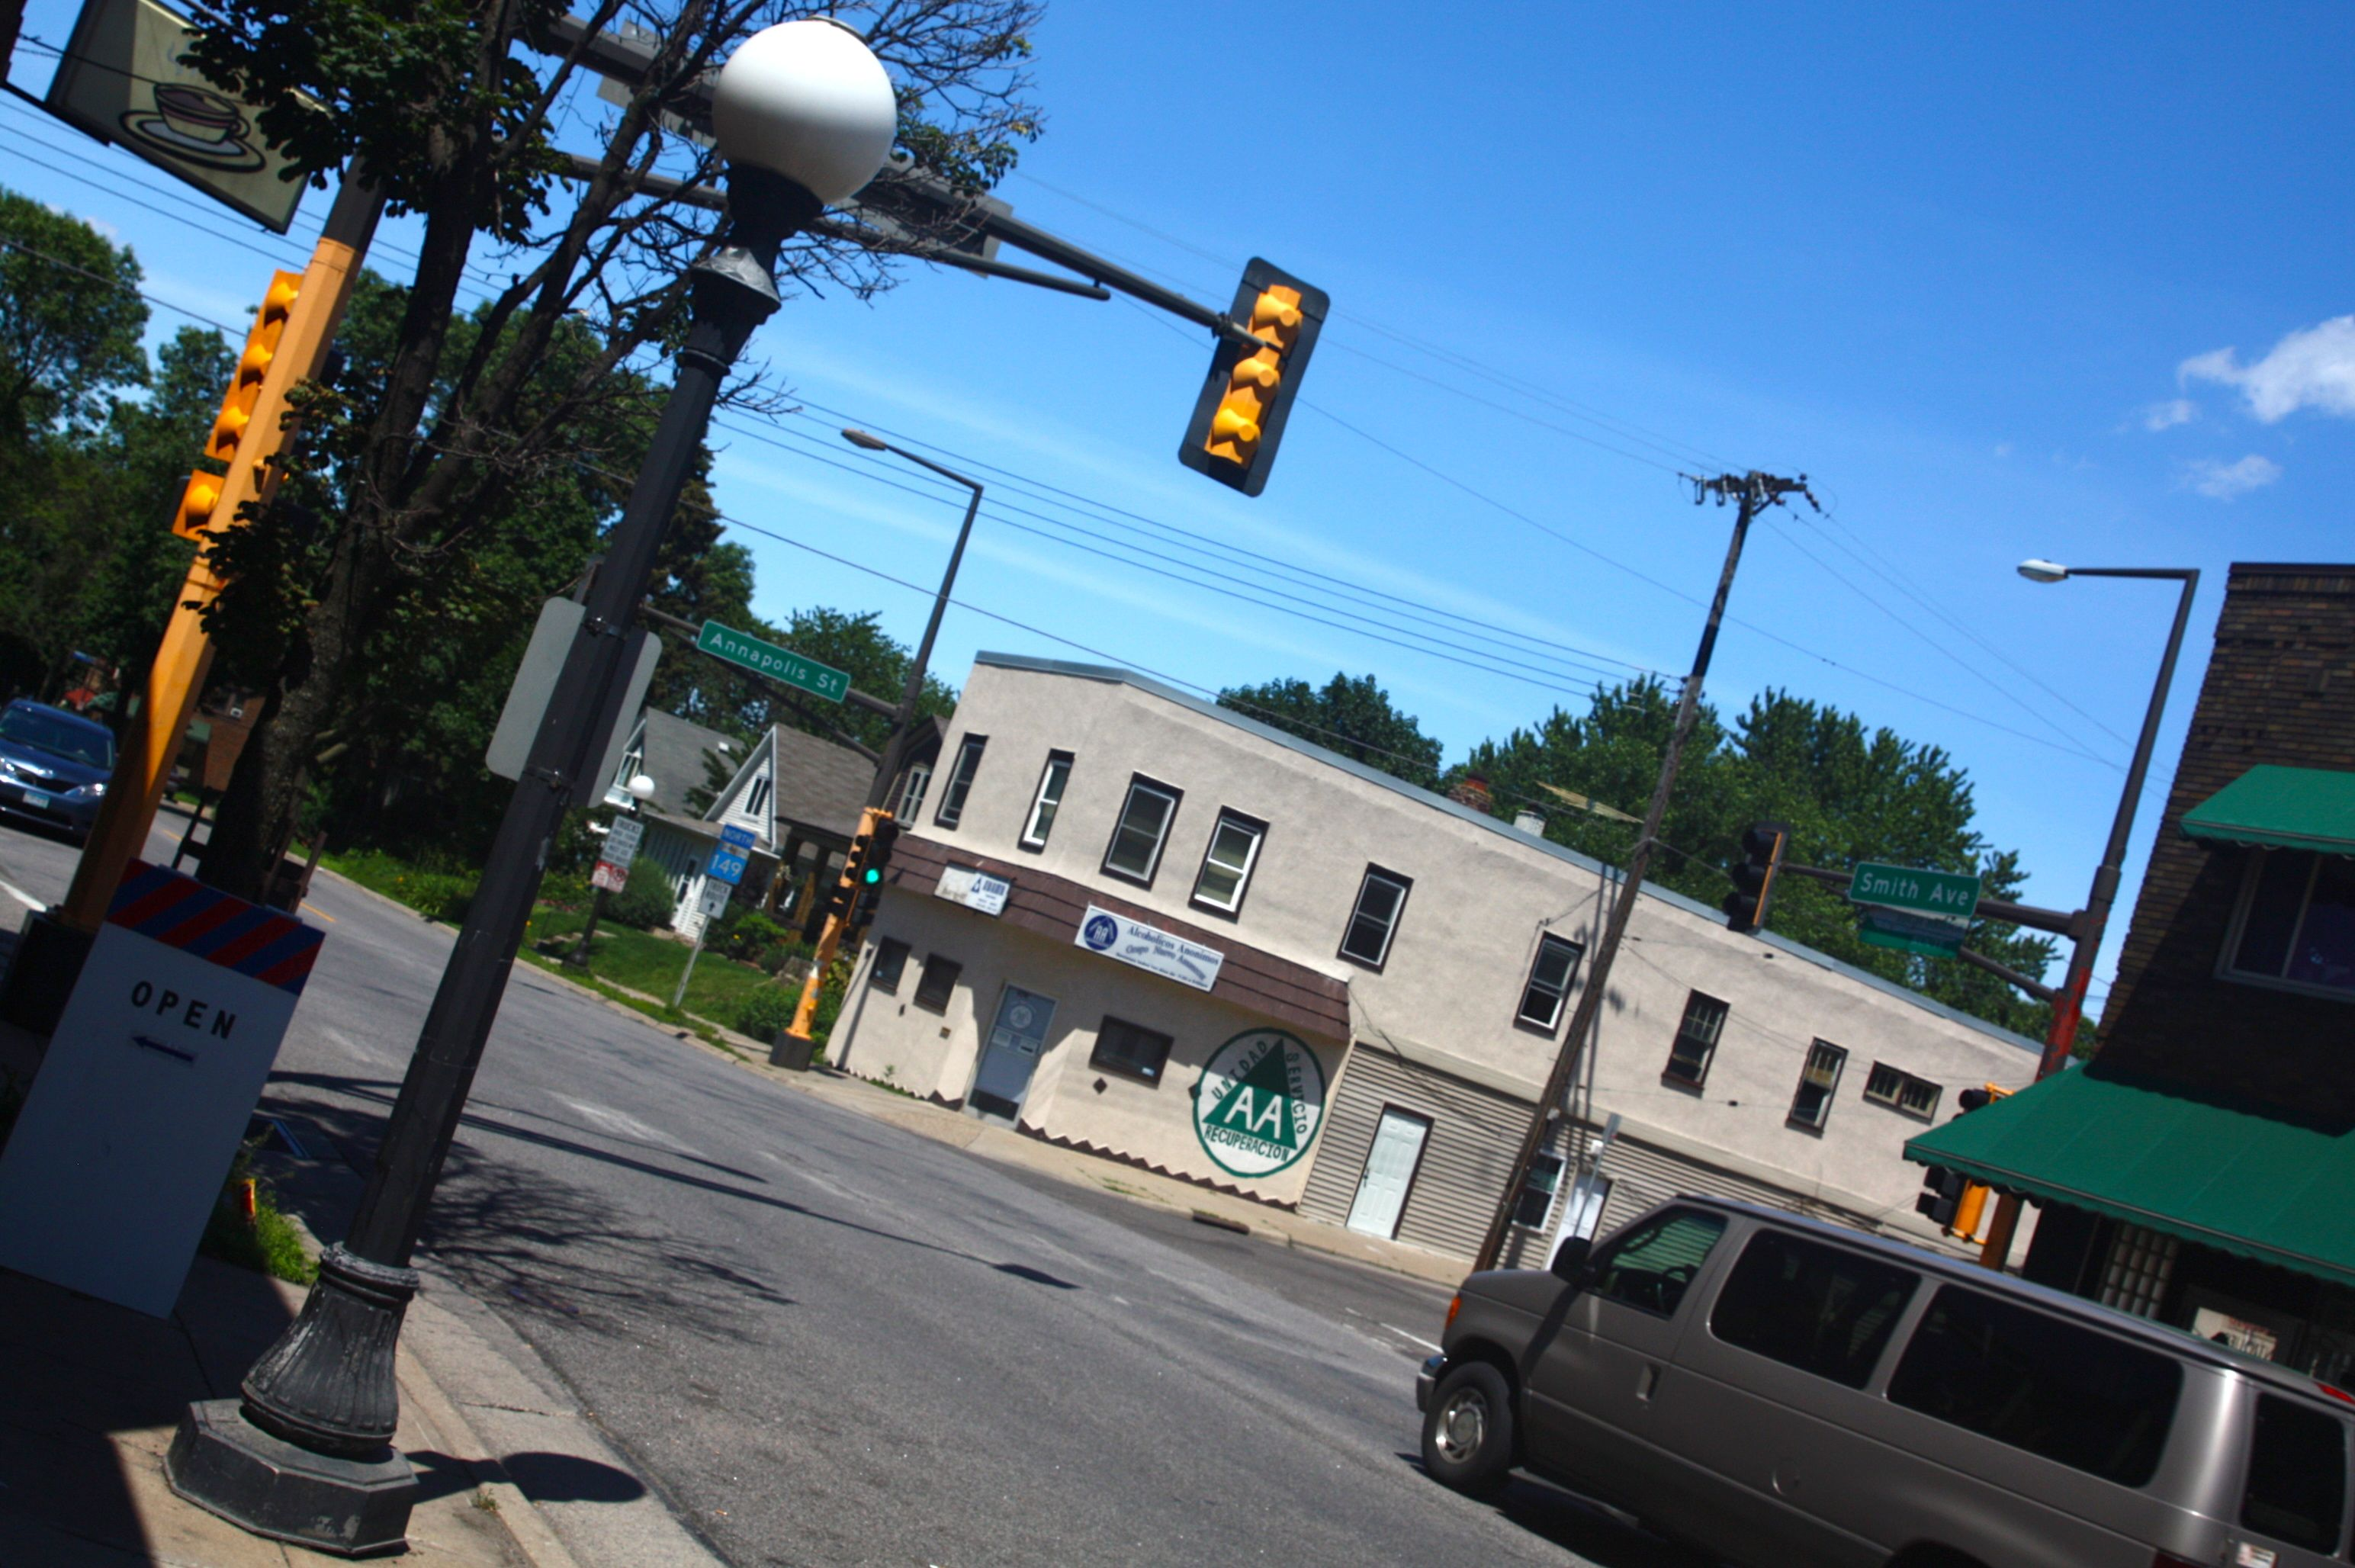 Annapolis Avenue and Saint Paul's border with West St. Paul. The street light post on the left is one of several of the same style as those in Saint Paul.